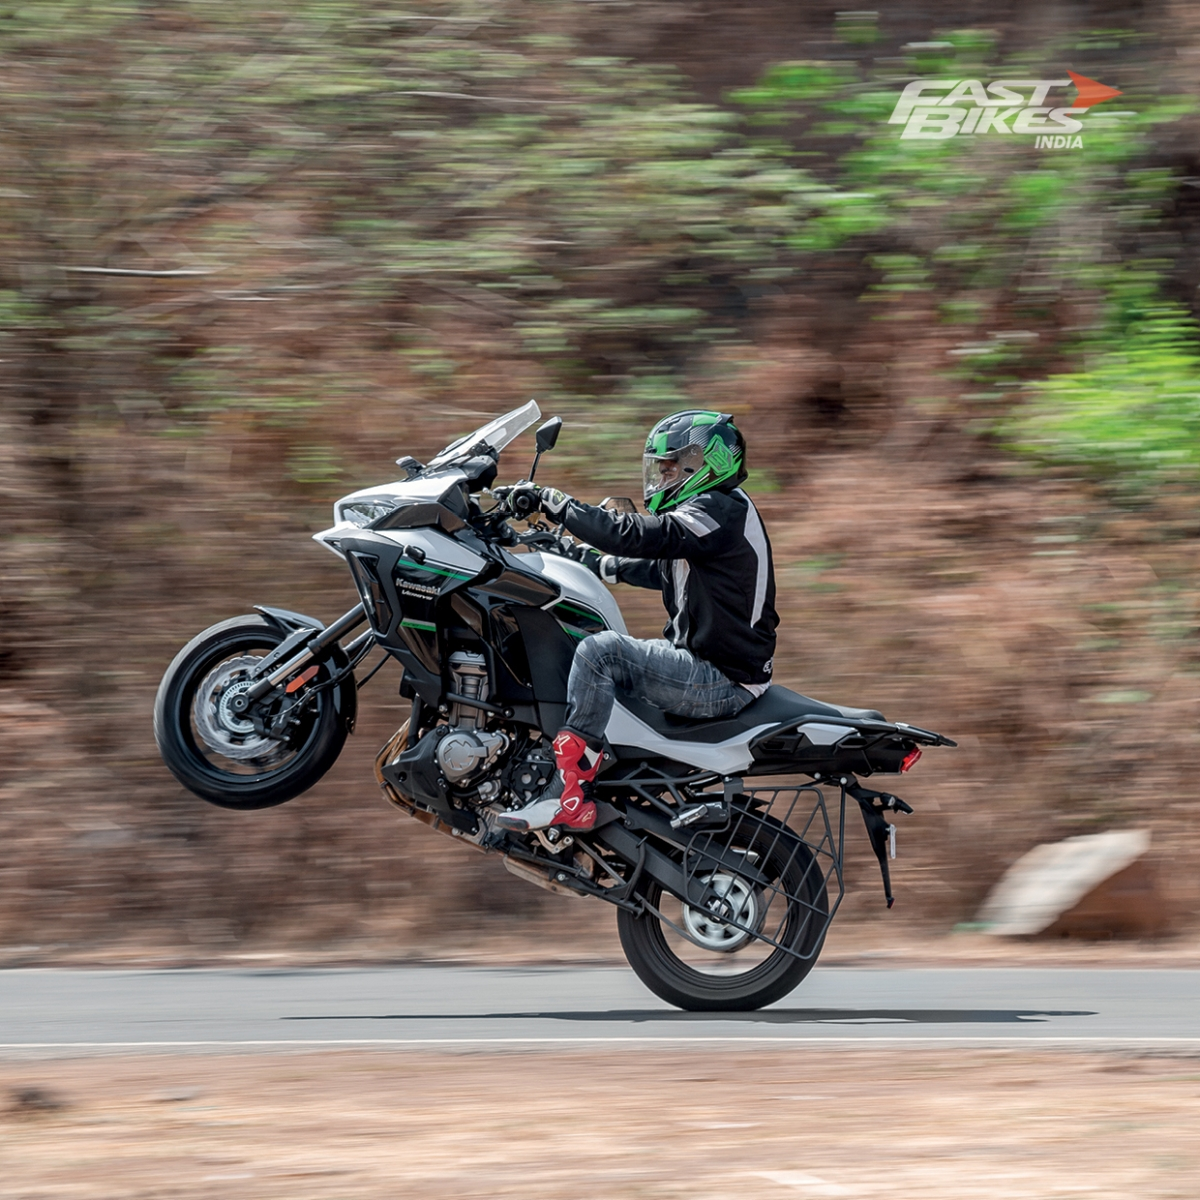 And you thought ADVs can't wheelie?